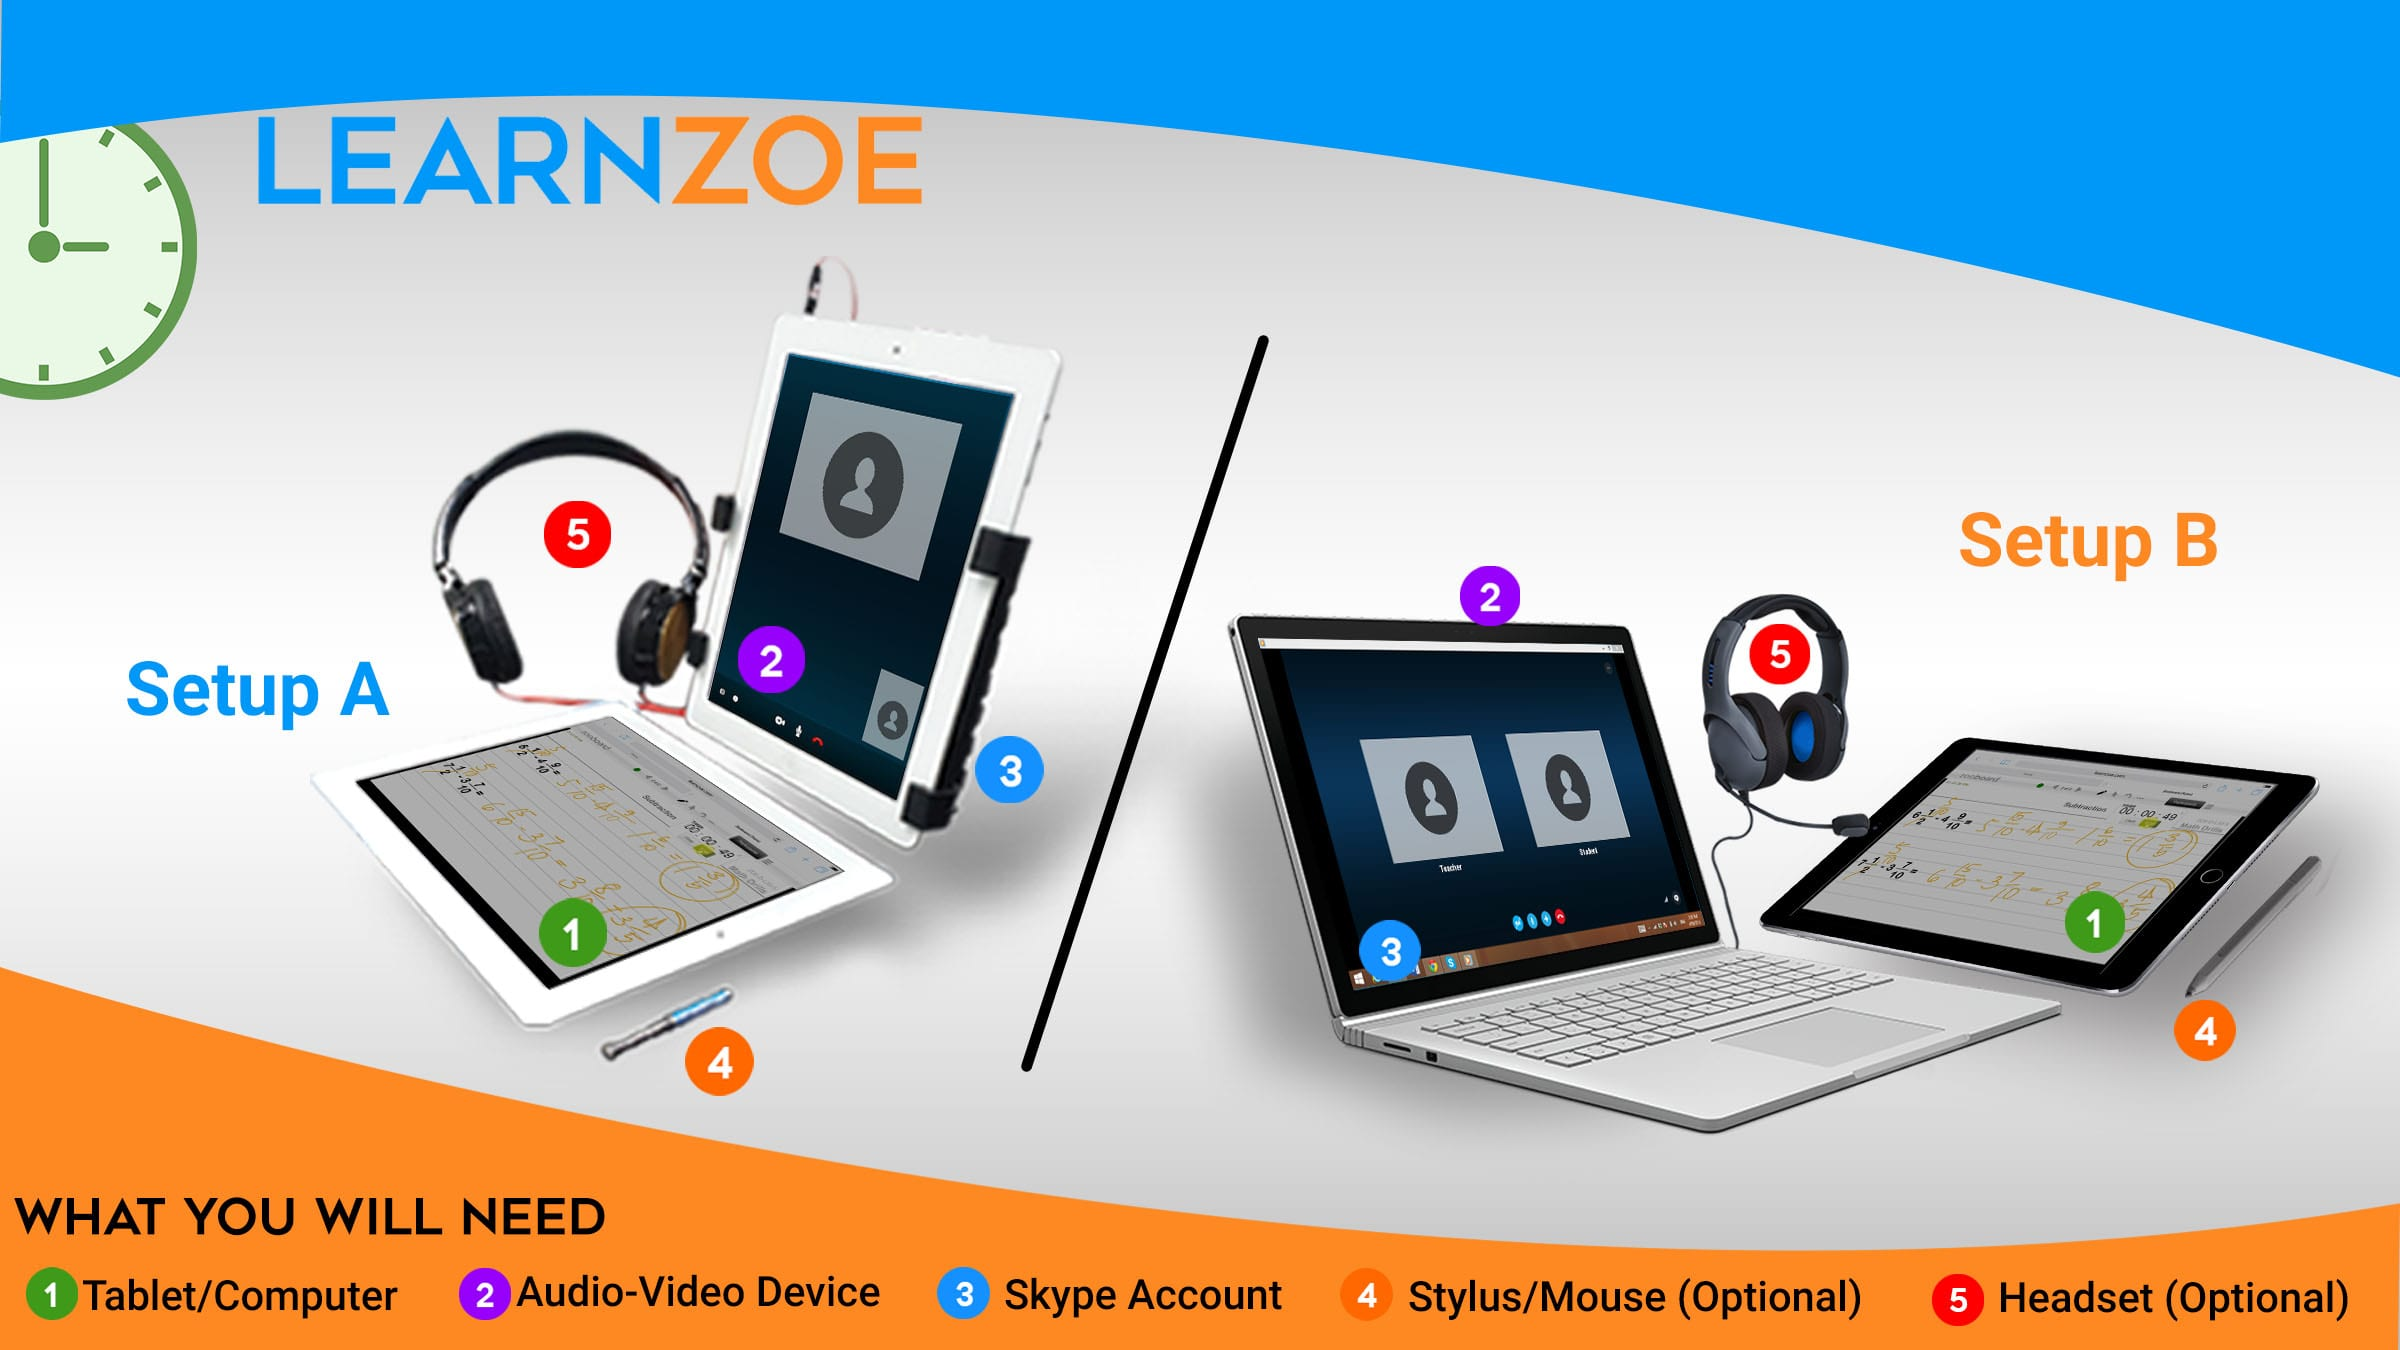 Devices needed for Learn Zoe session. Option A: 2 tables, headset, stylus and skype account. Option B: Laptop, tablet, headset, stylus and skype account